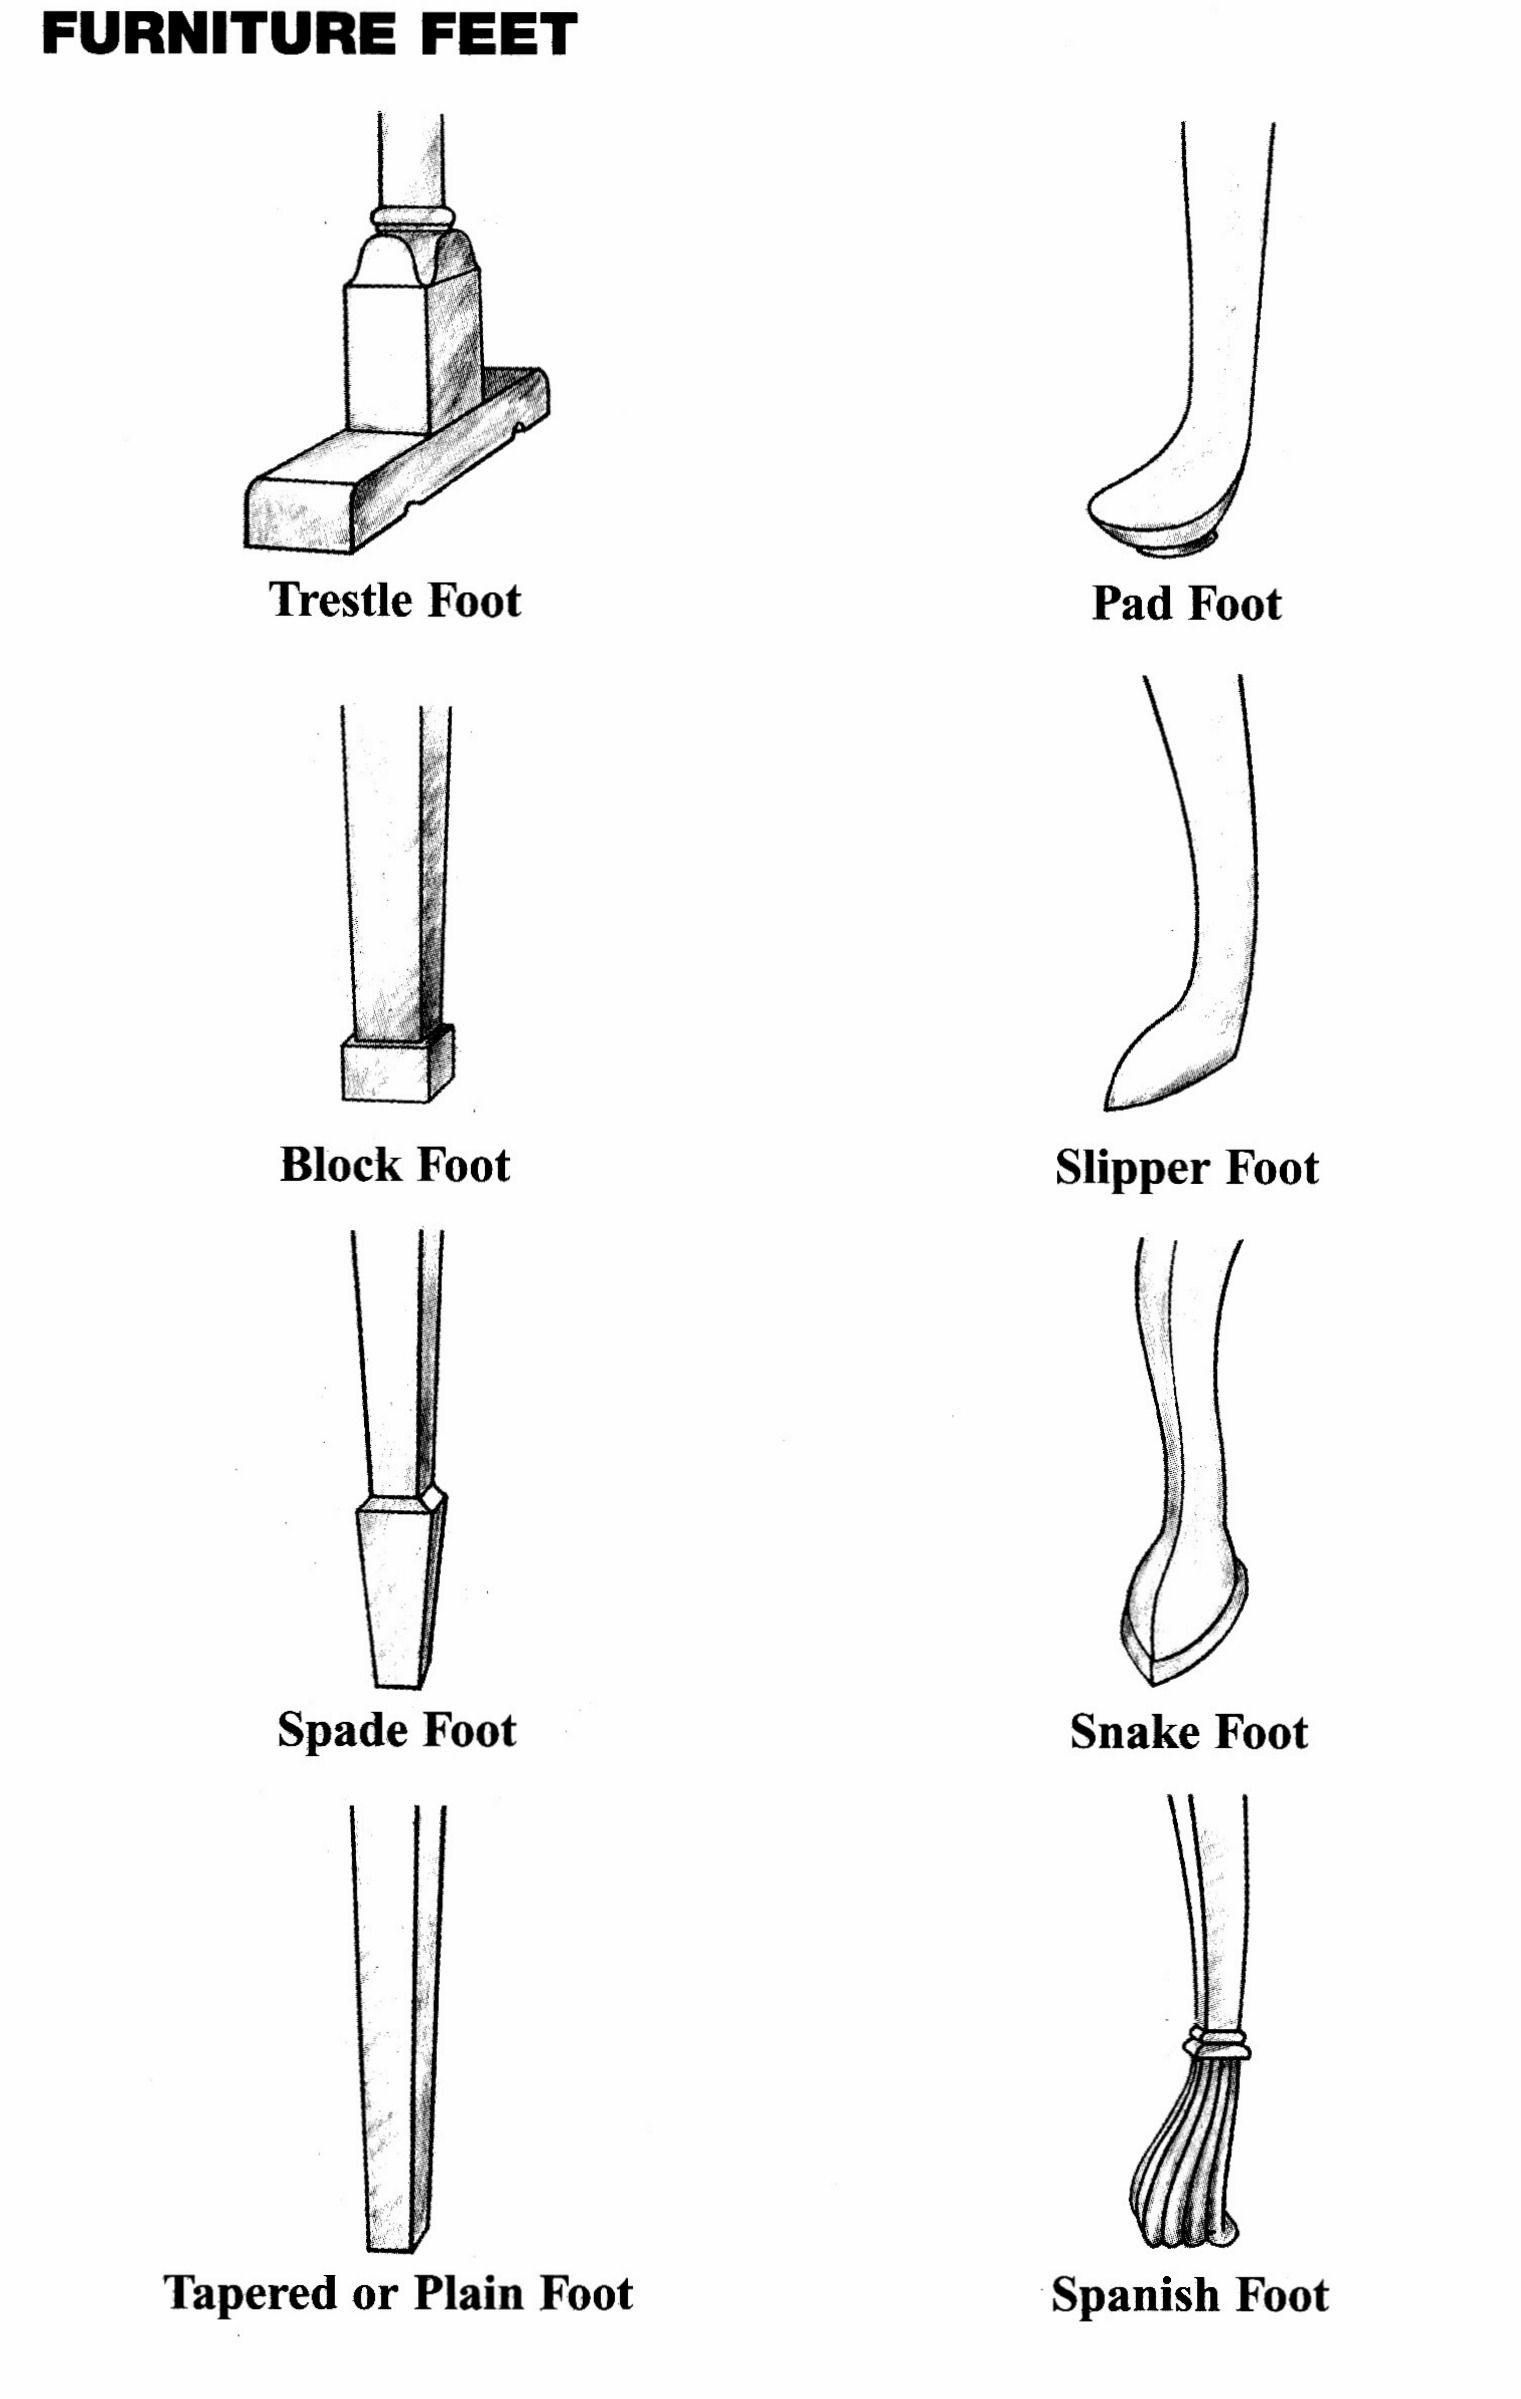 Diagrams Of Furniture Feet